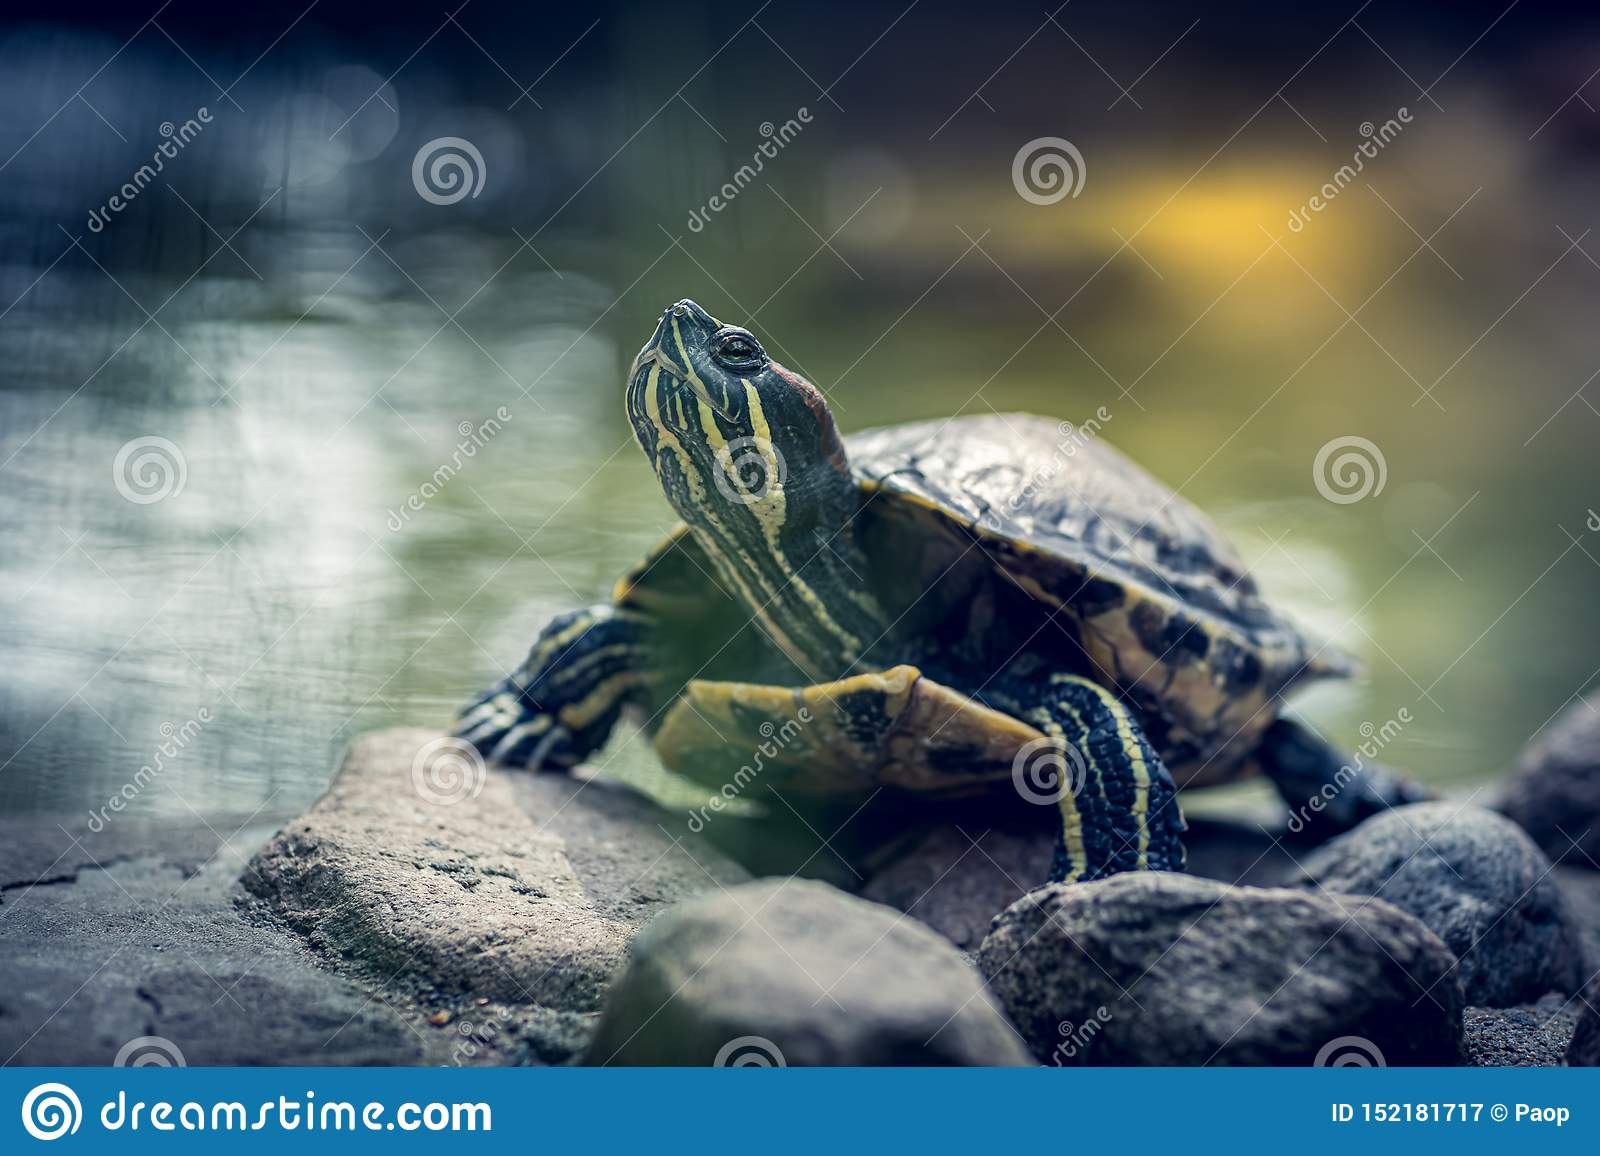 Tiny turtle on a small rock